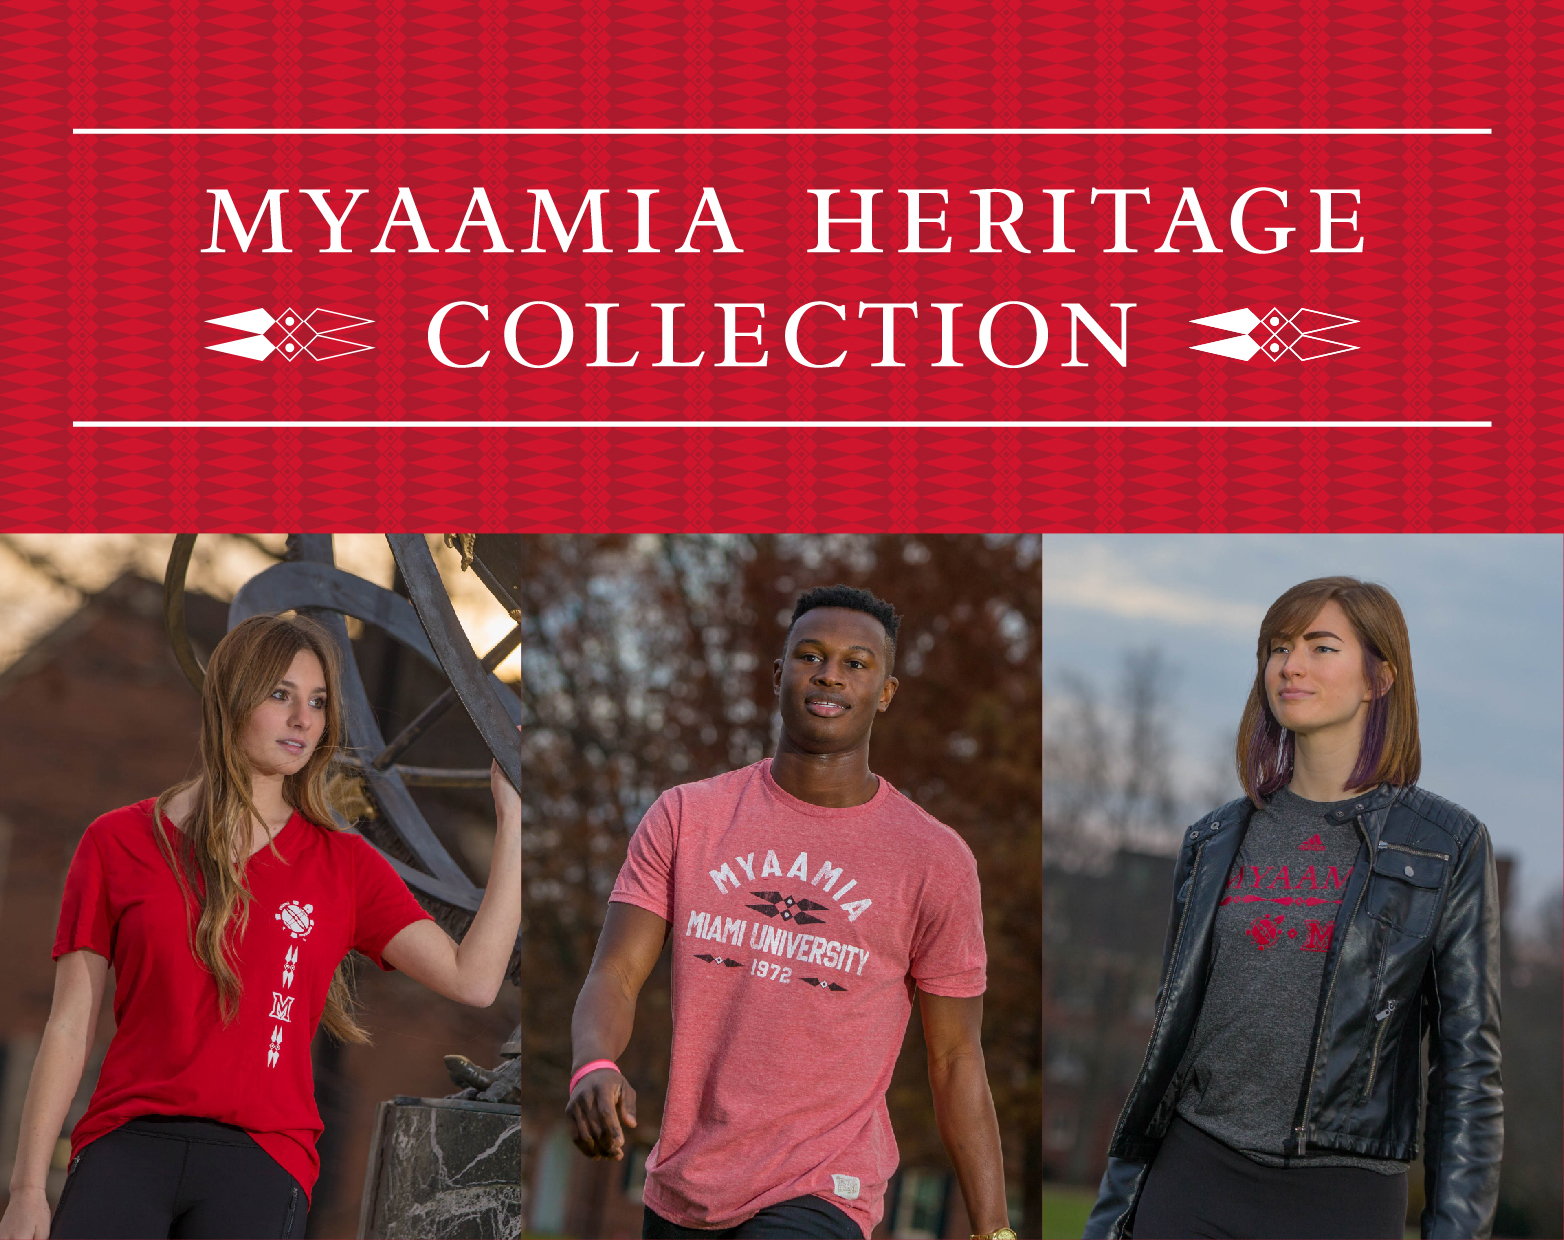 Myaamia Heritage Collection. Students modeling Myaamia Heritage Collection merchandise.